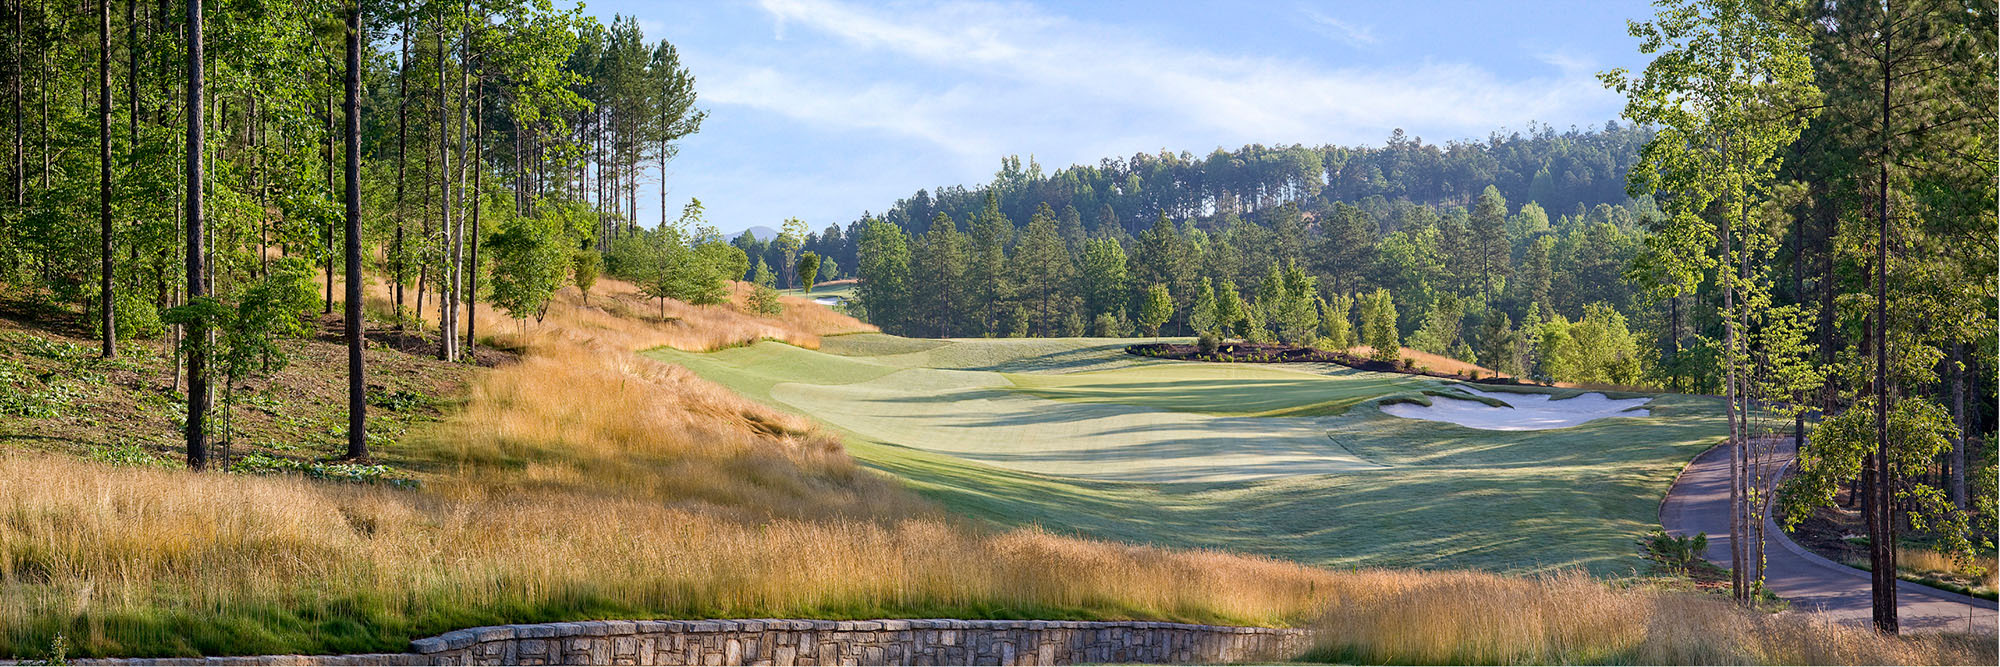 Golf Course Image - The Cliffs at Keowee Springs No. 3